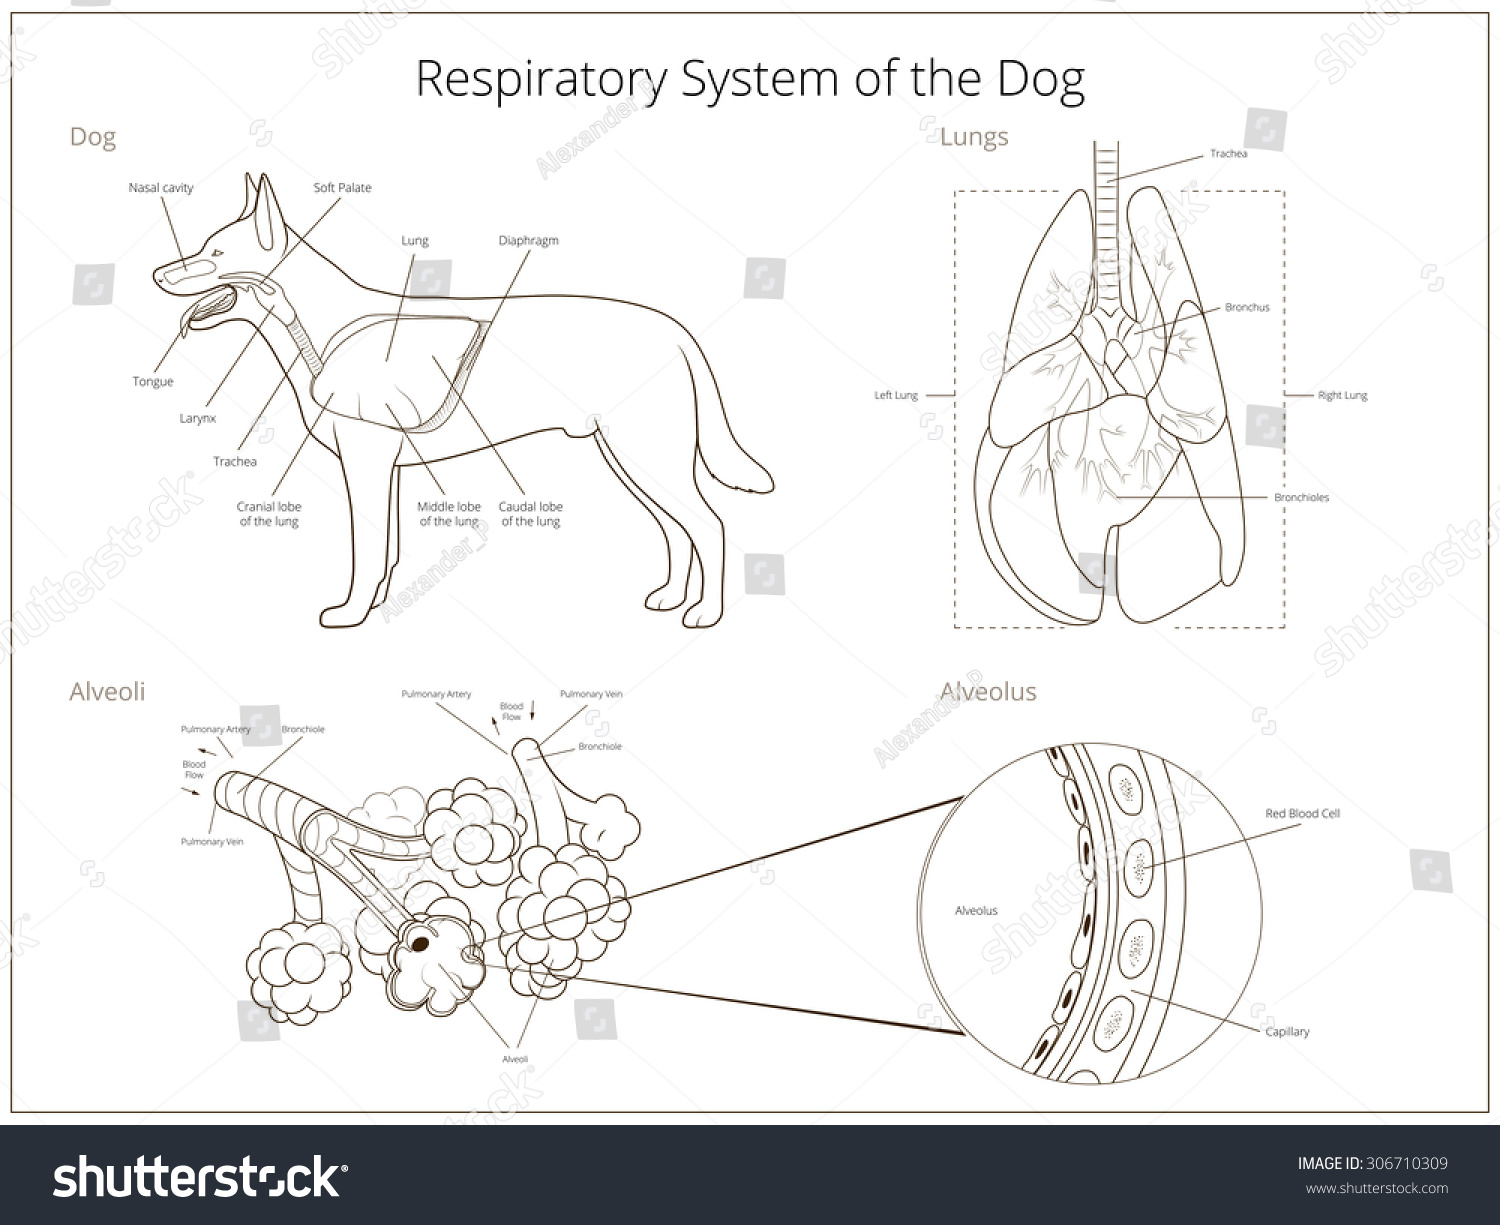 Respiratory system dog vector illustration stock vector royalty respiratory system of the dog vector illustration ccuart Choice Image